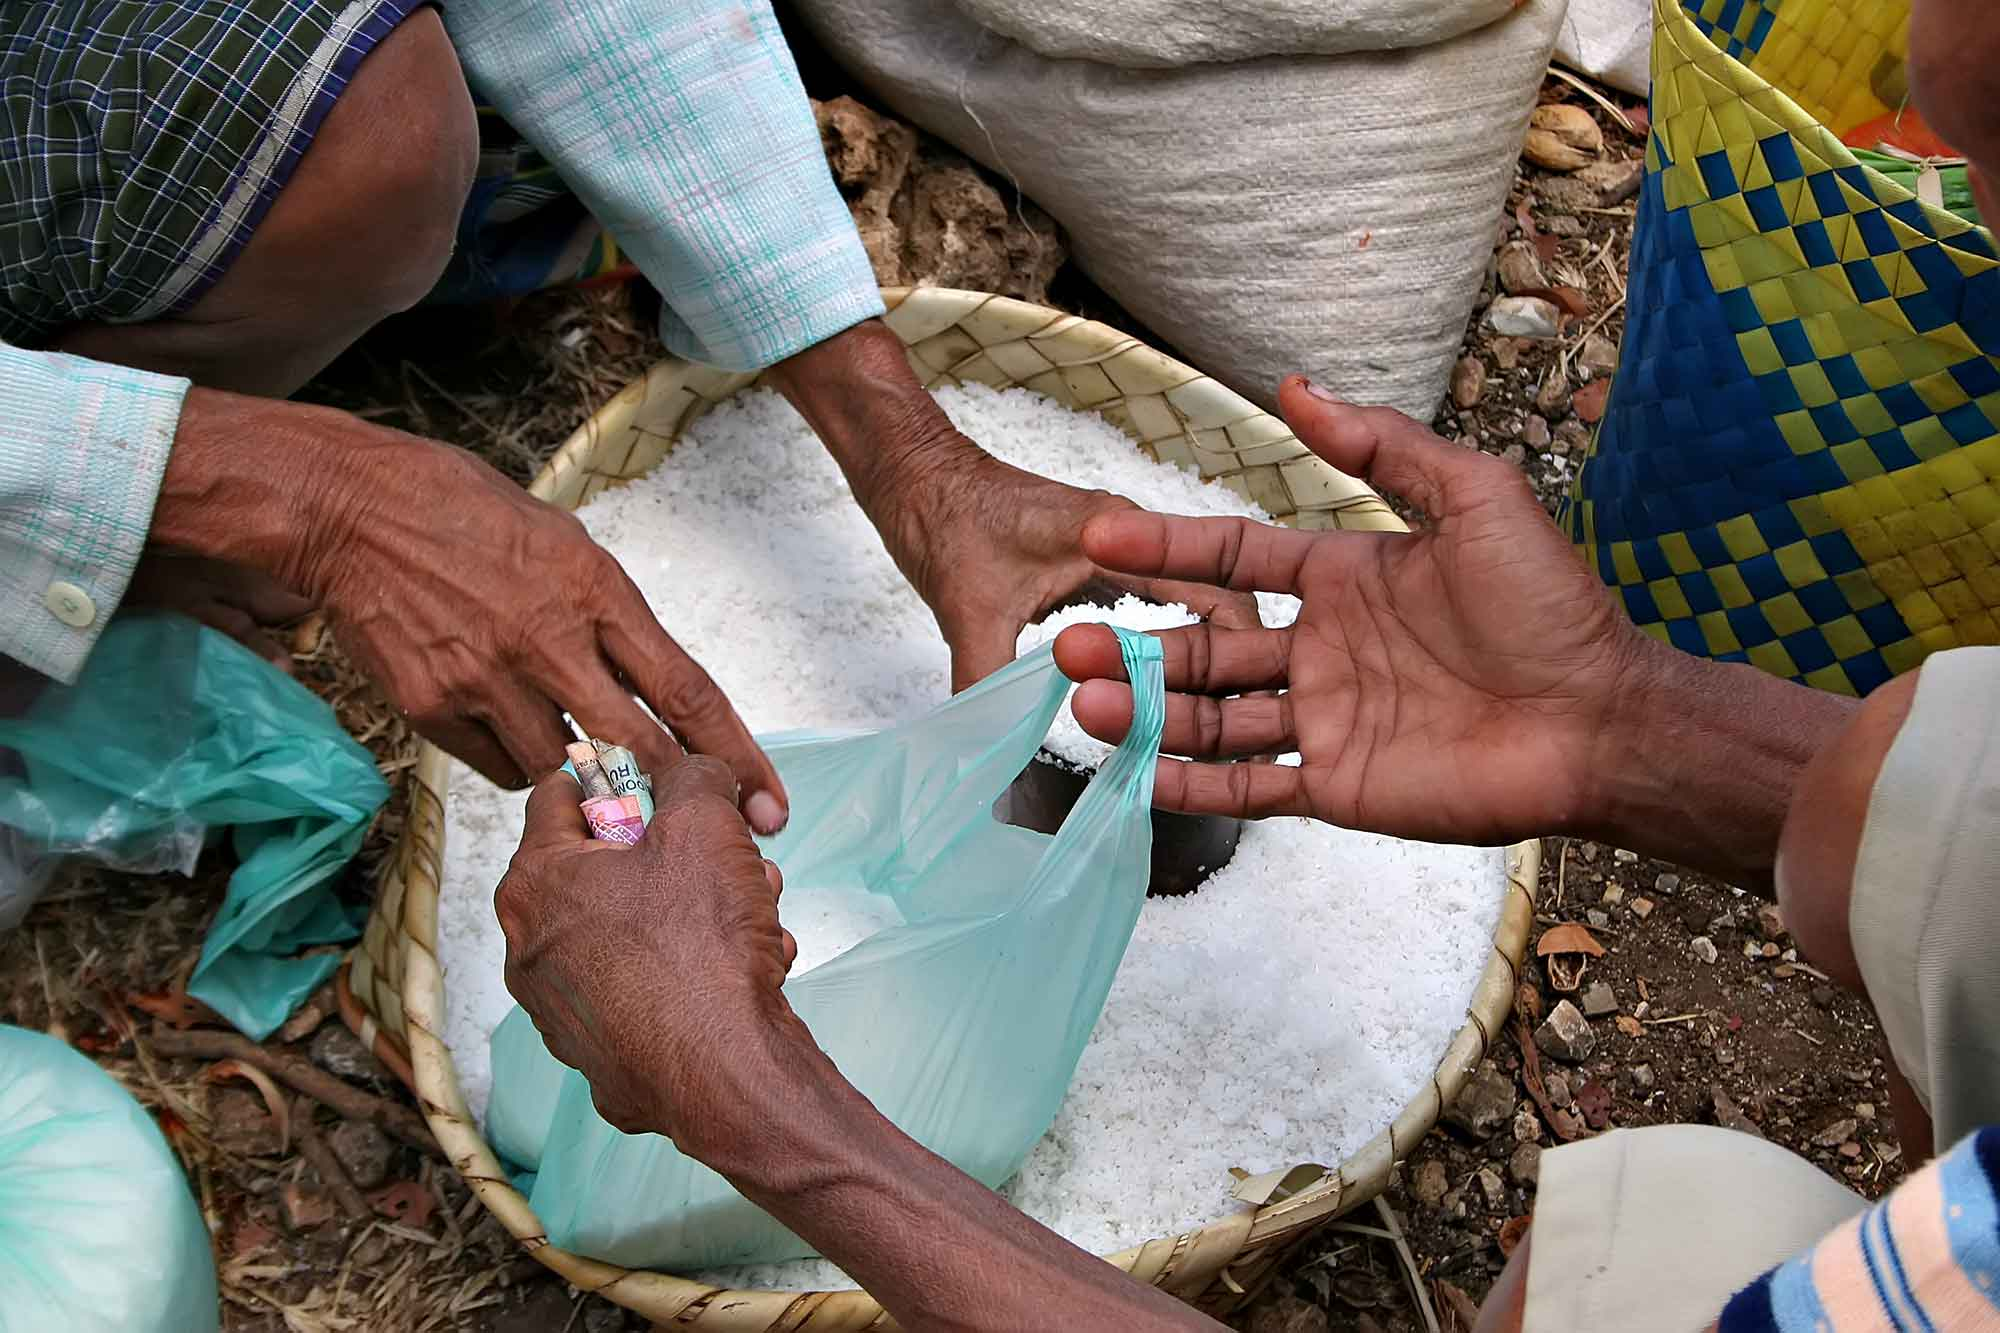 Selling salt in Timor, Indonesia. © Ulli Maier & Nisa Maier